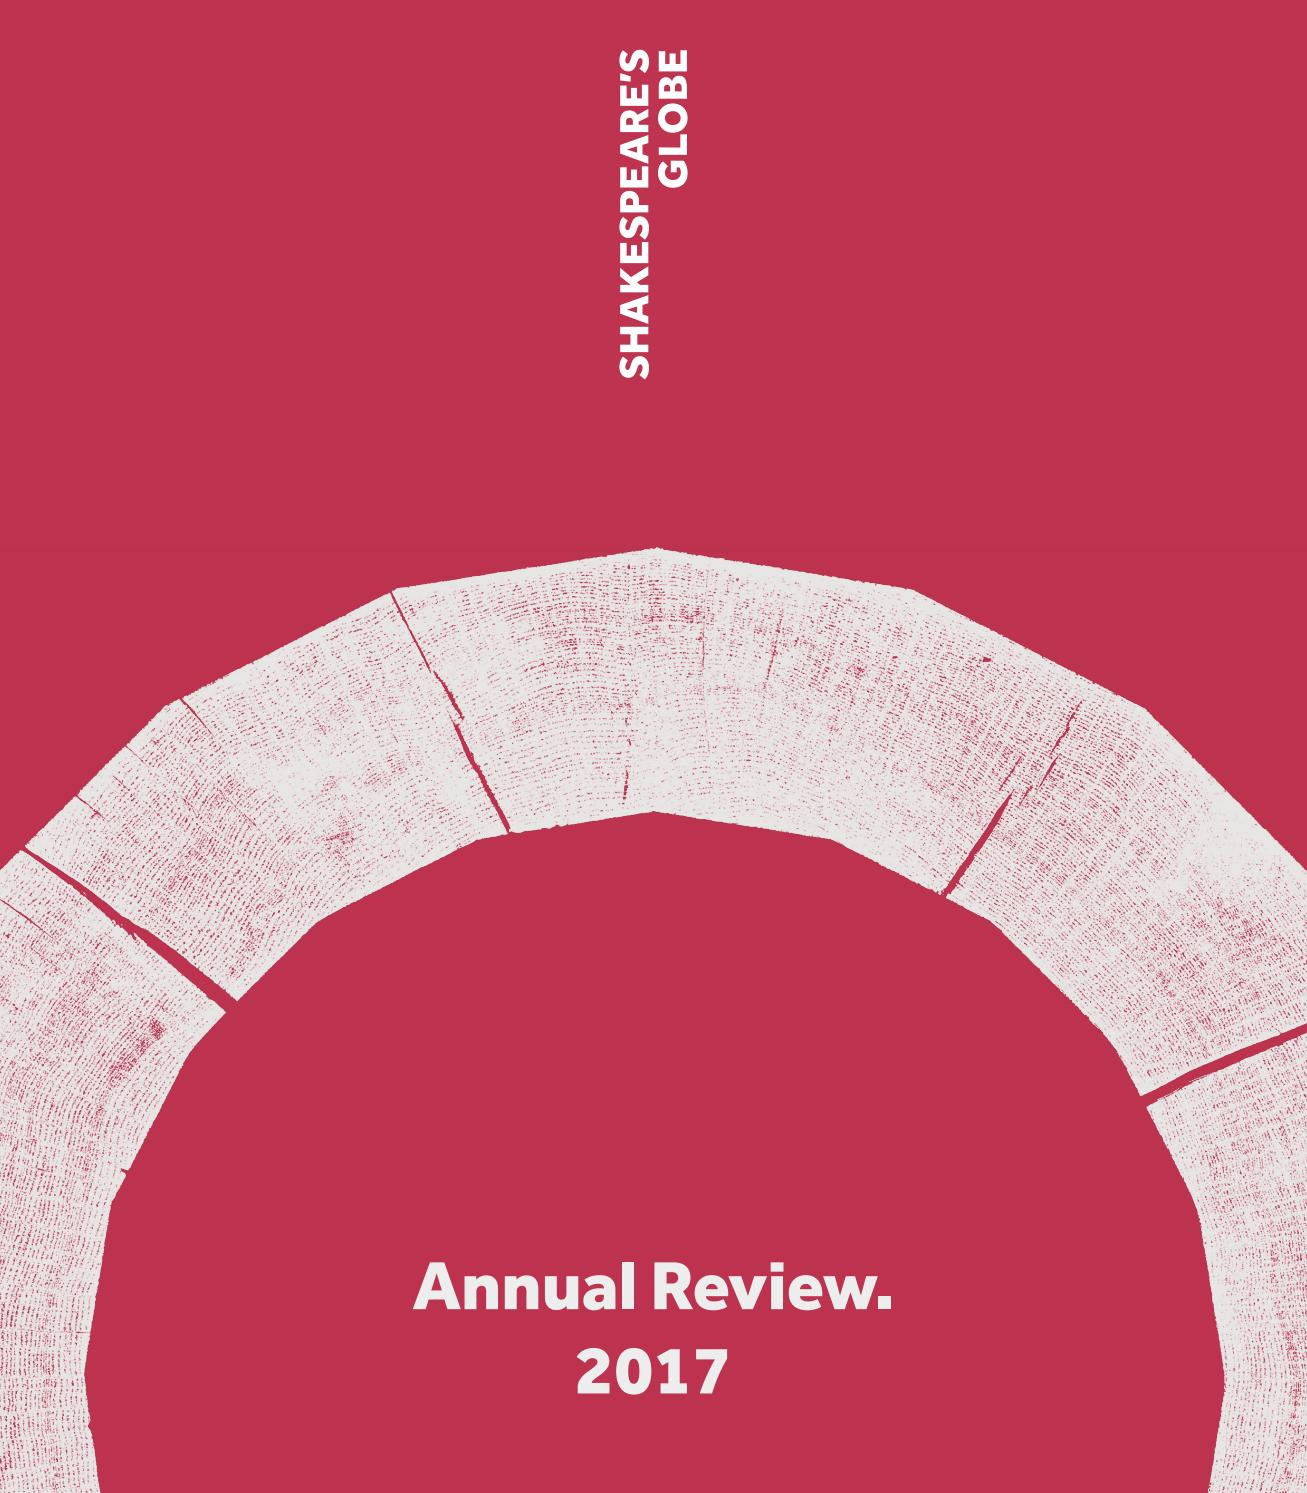 Annual Review 2017 by Shakespeare's Globe - issuu